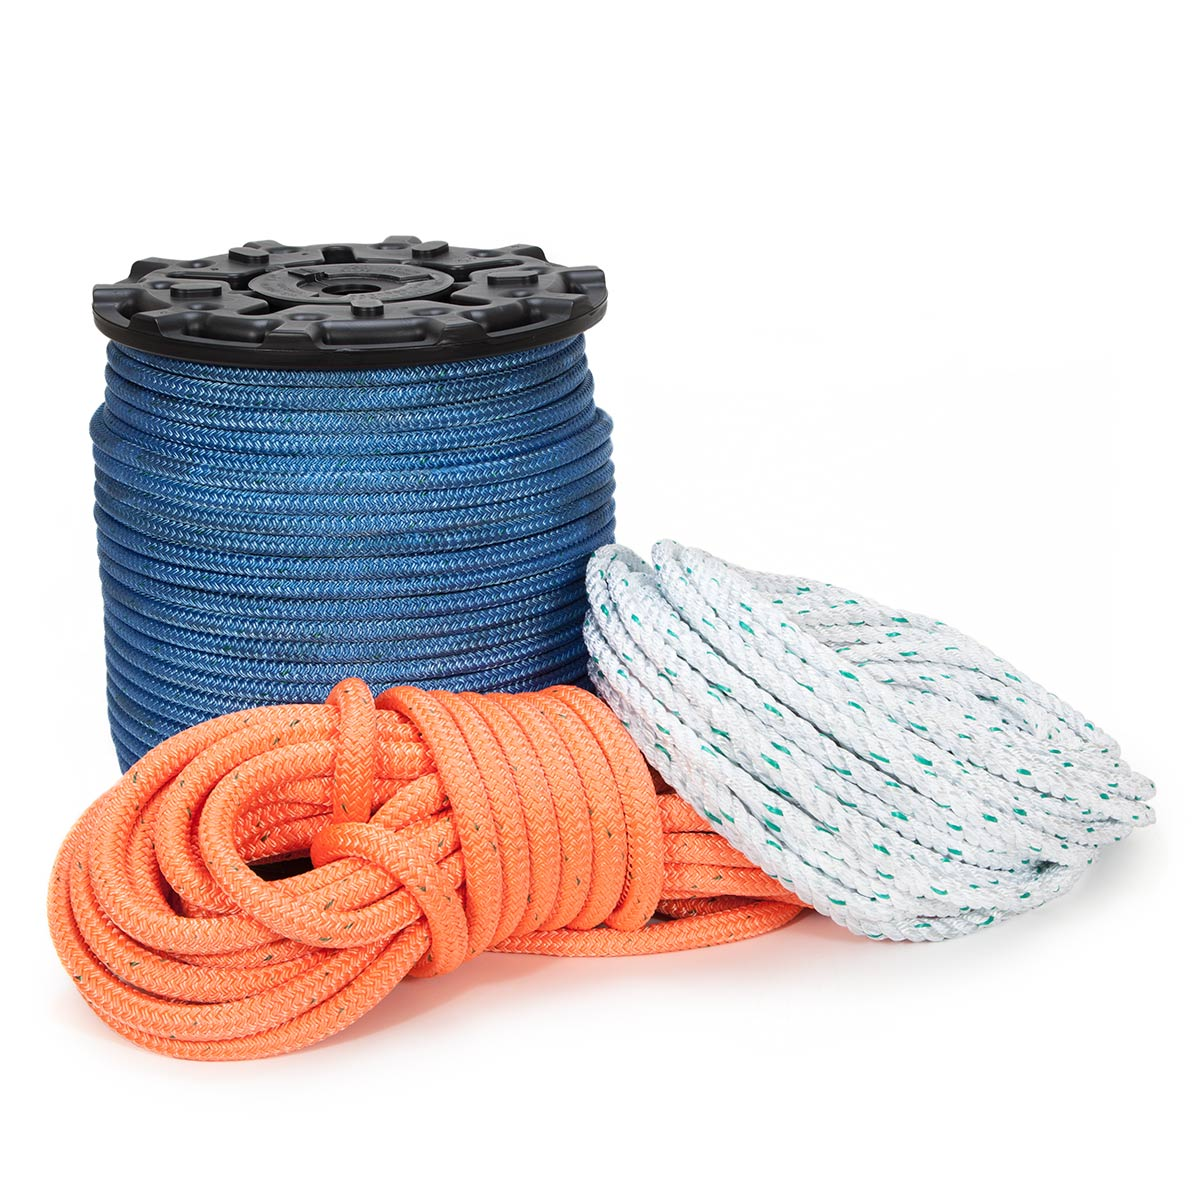 Best Selection of Cut-to-Length Rope - Knot & Rope Supply